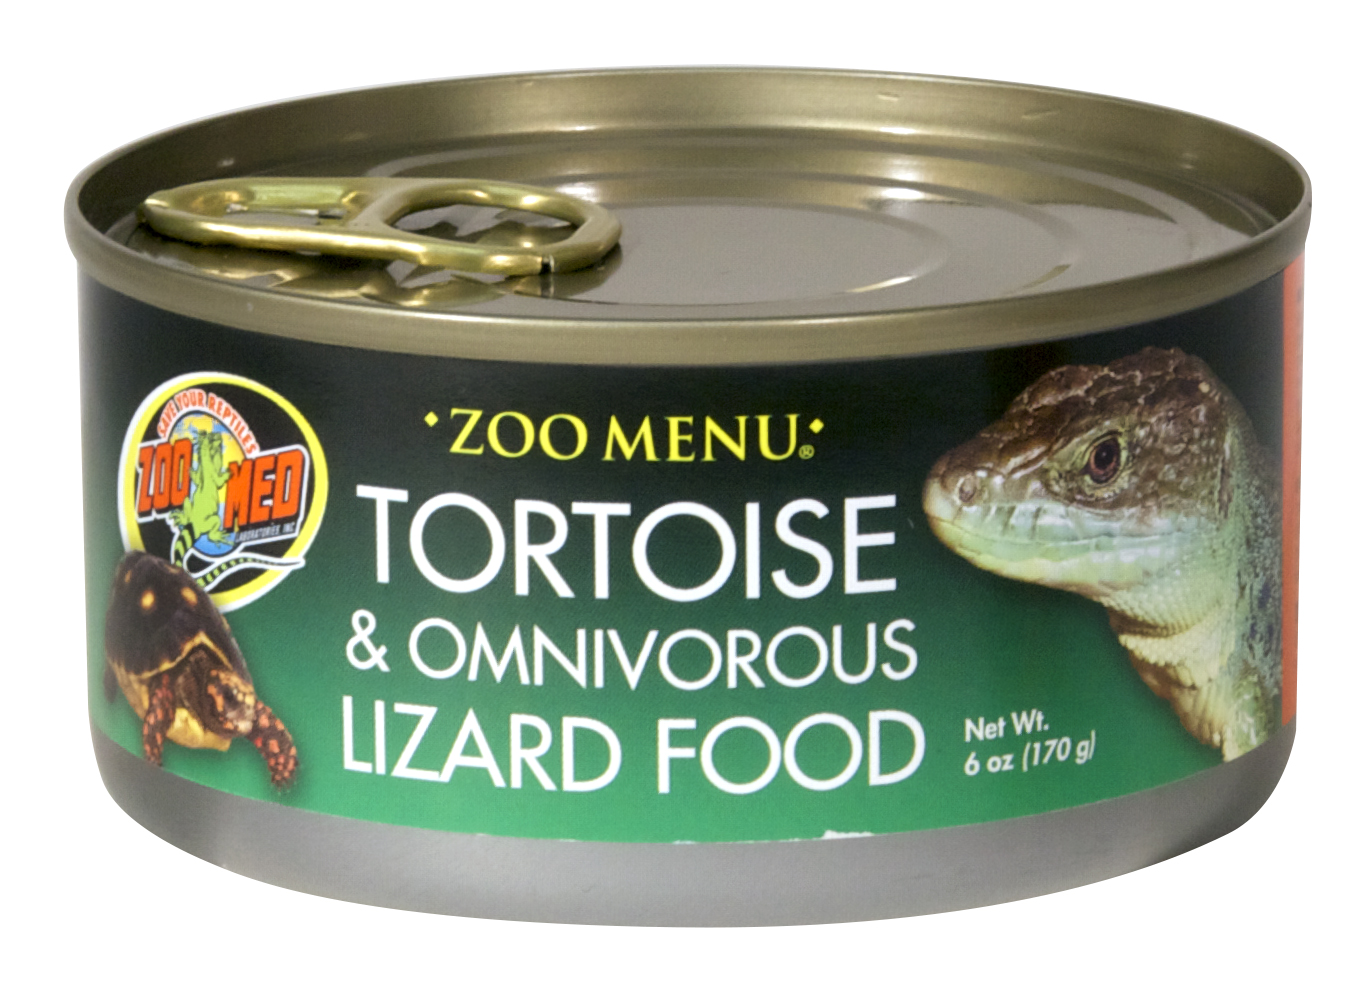 Tortoise/Lizard Food (cans/wet), 6 oz